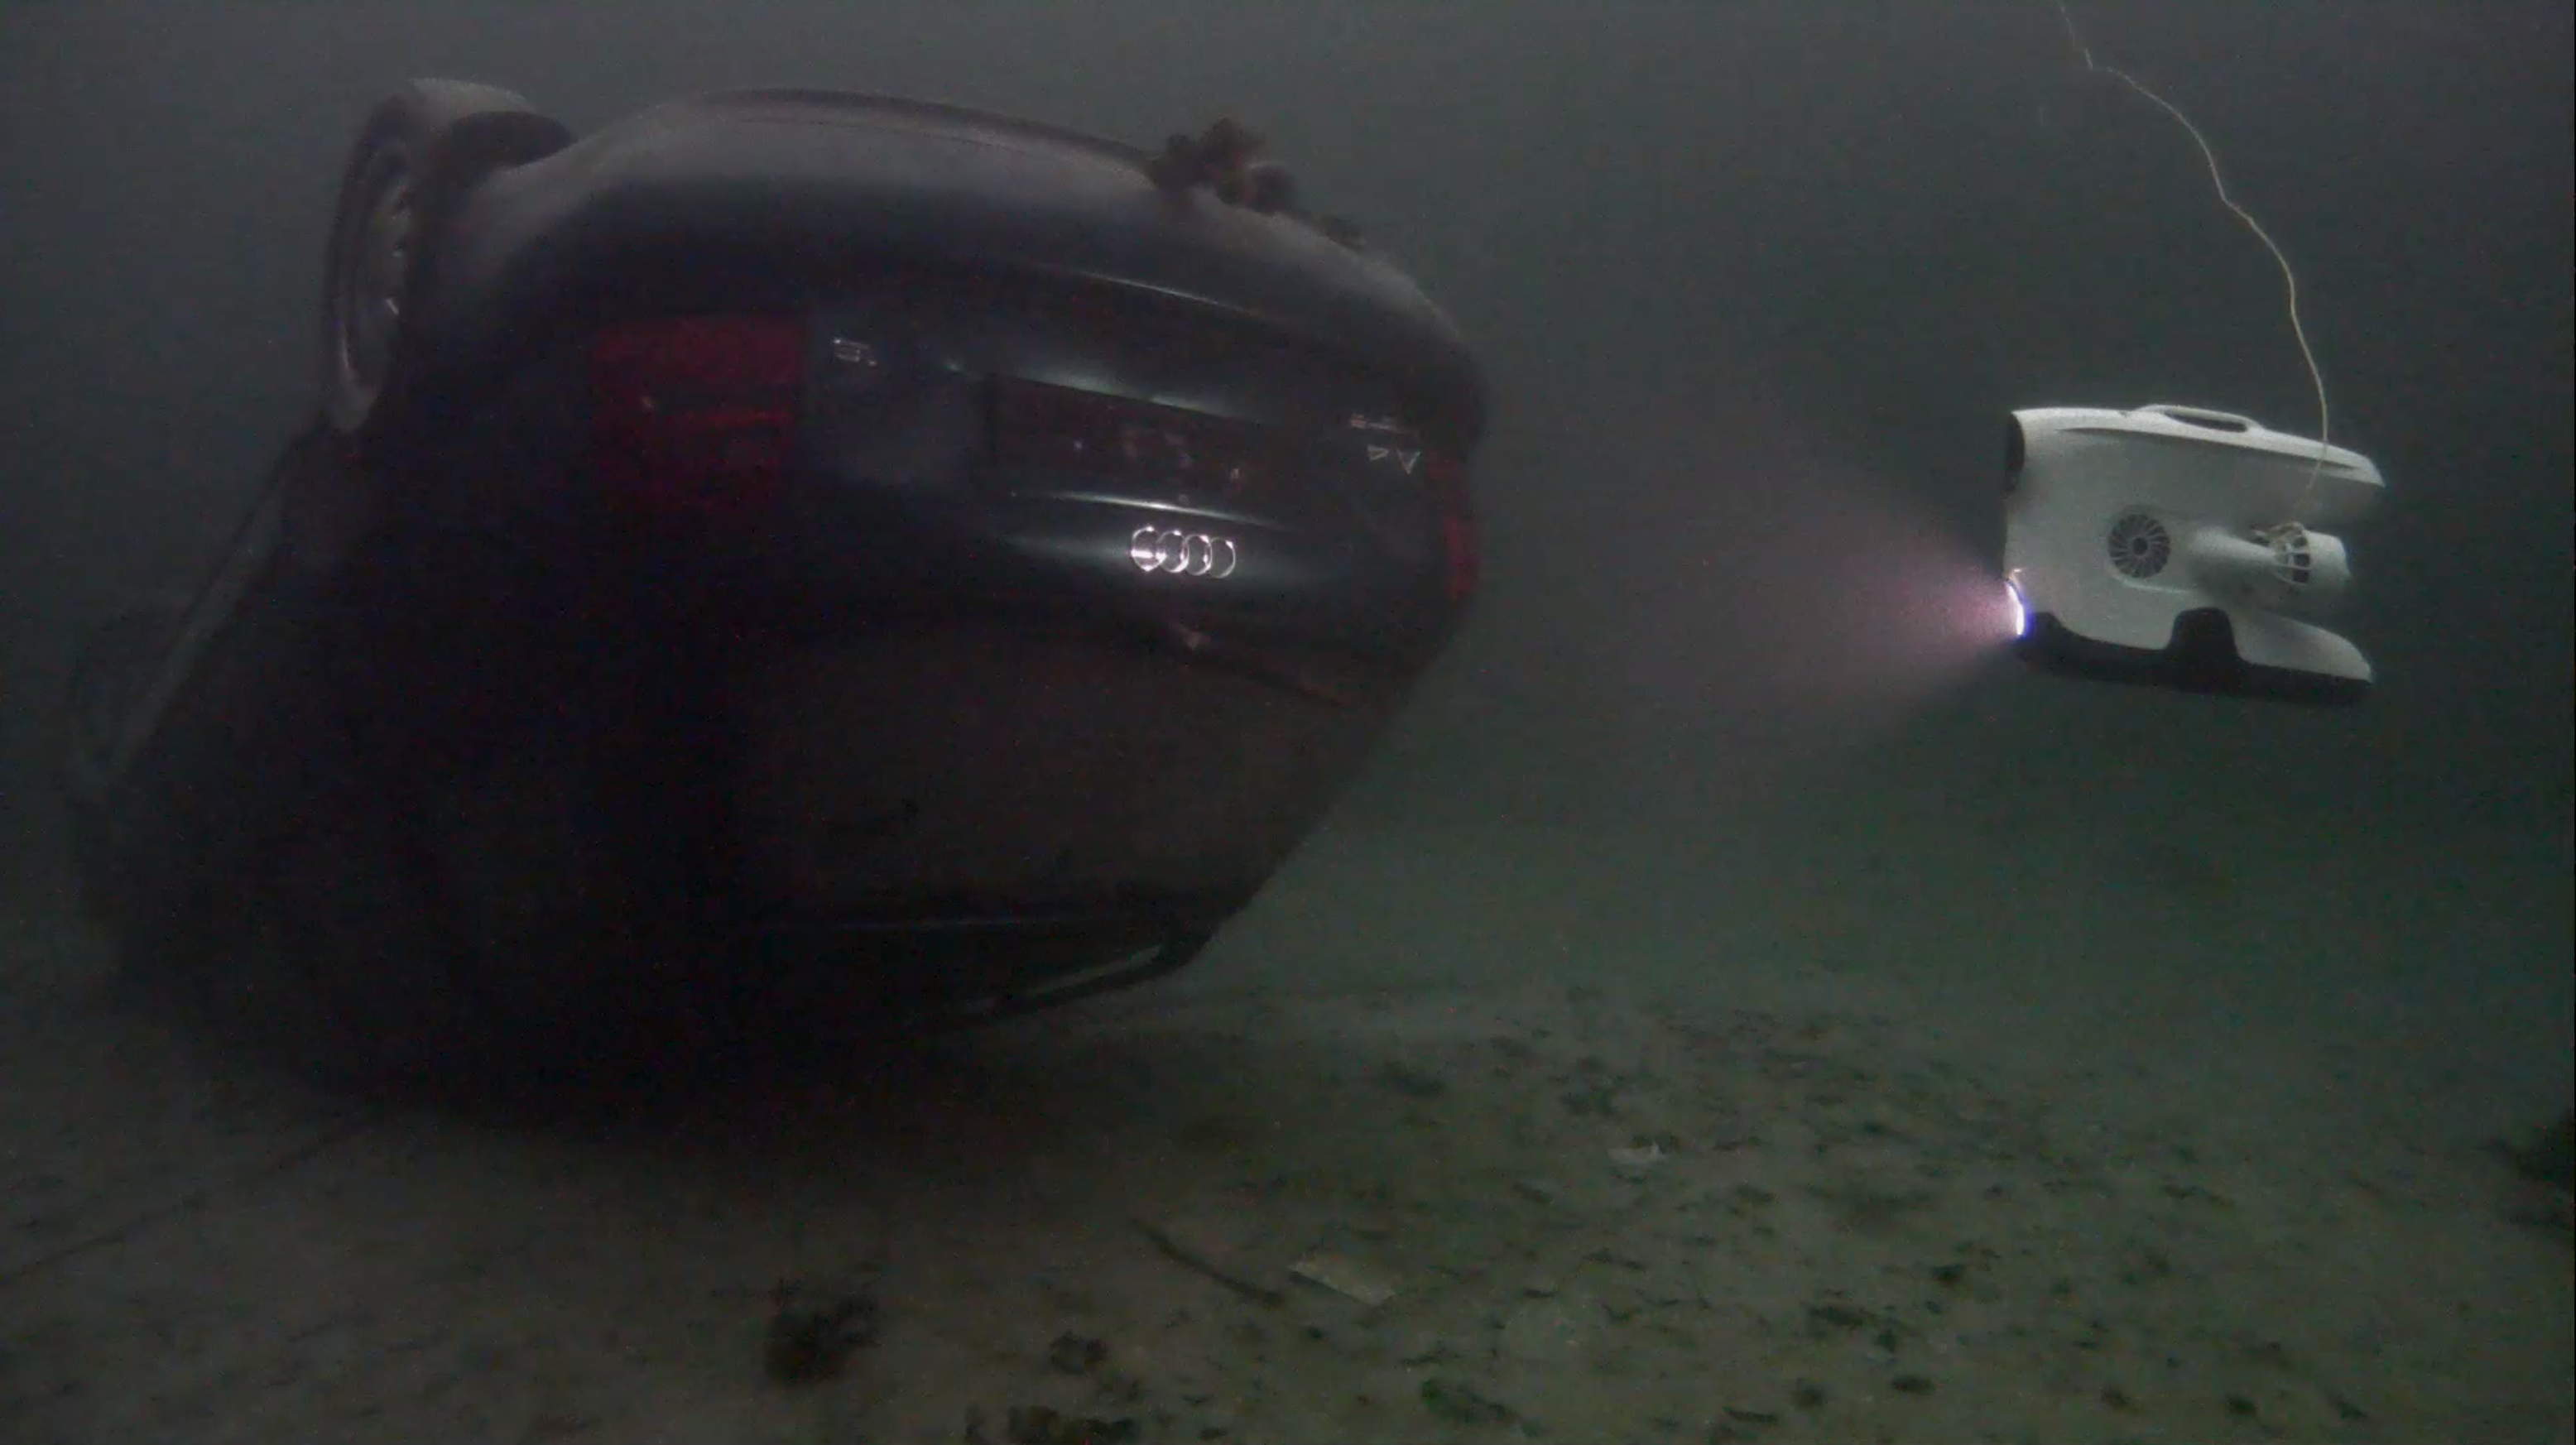 A sunken car found at Dora in Trondheim